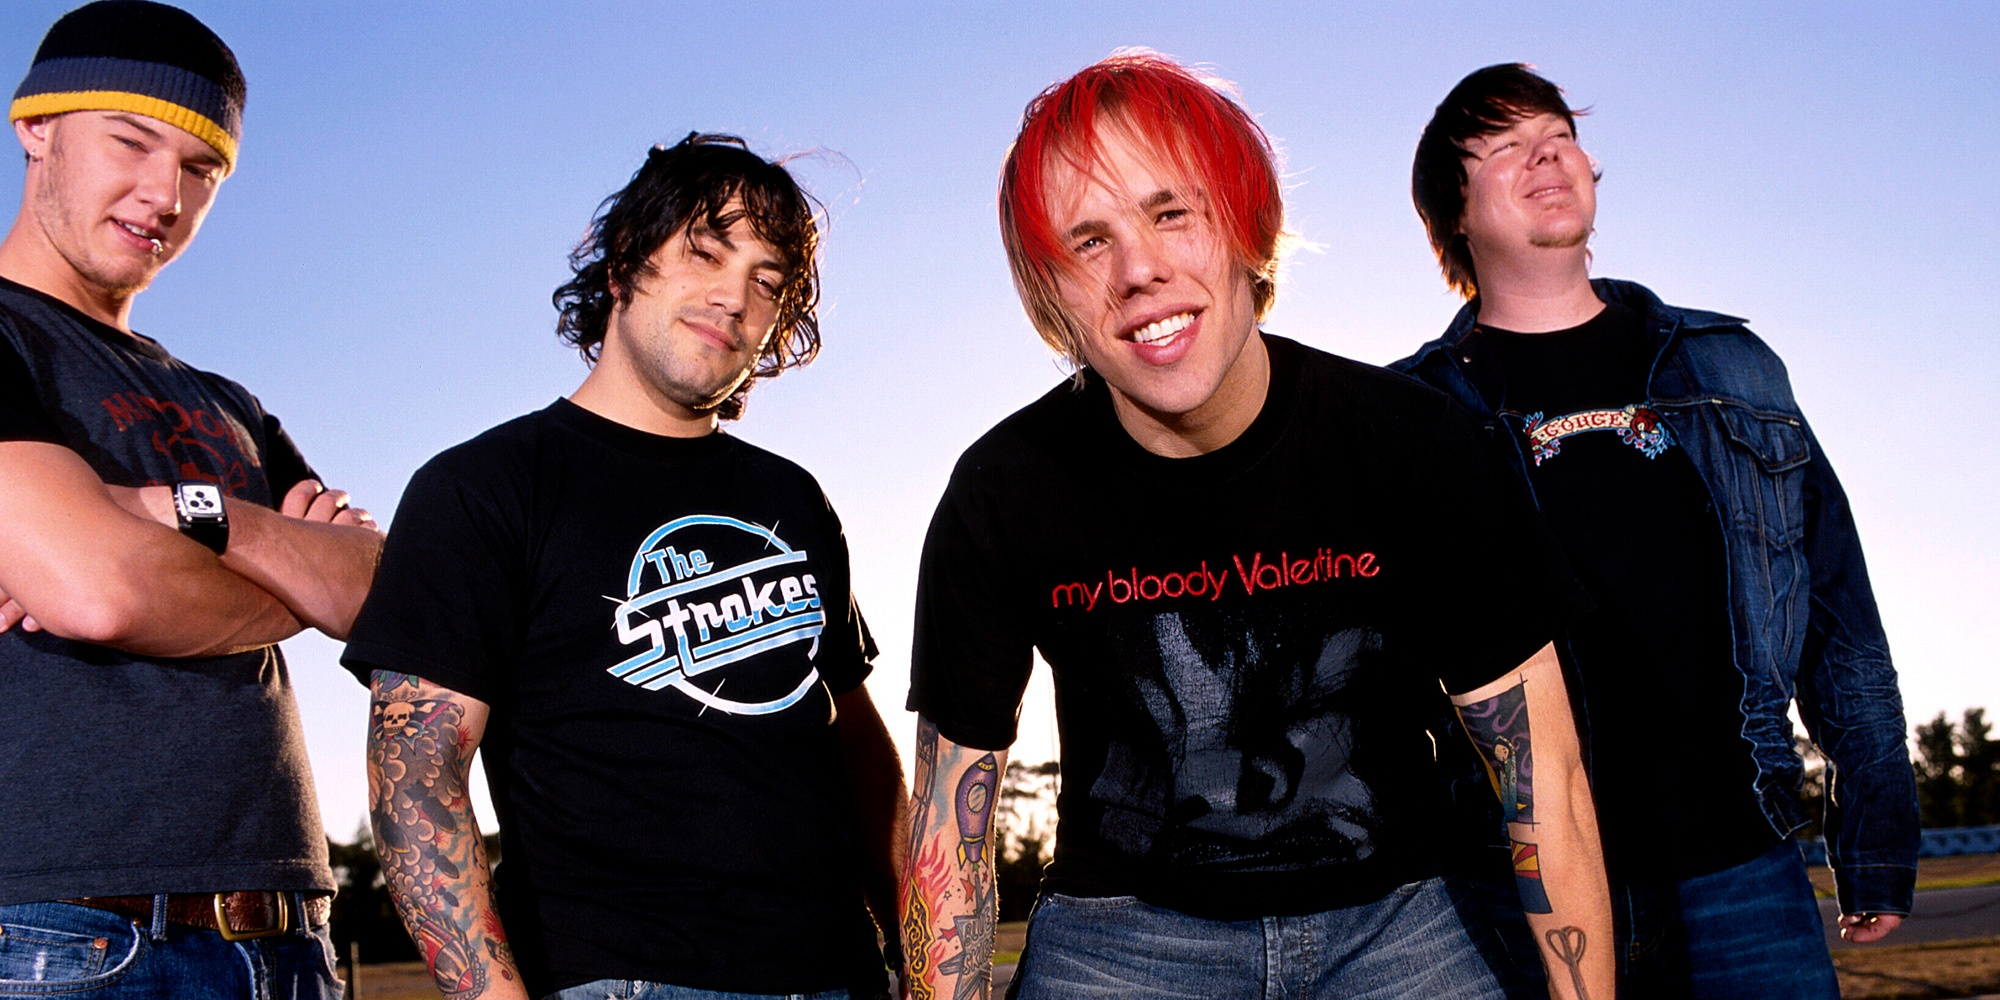 The Ataris are looking to return to Singapore, Indonesia and the Philippines